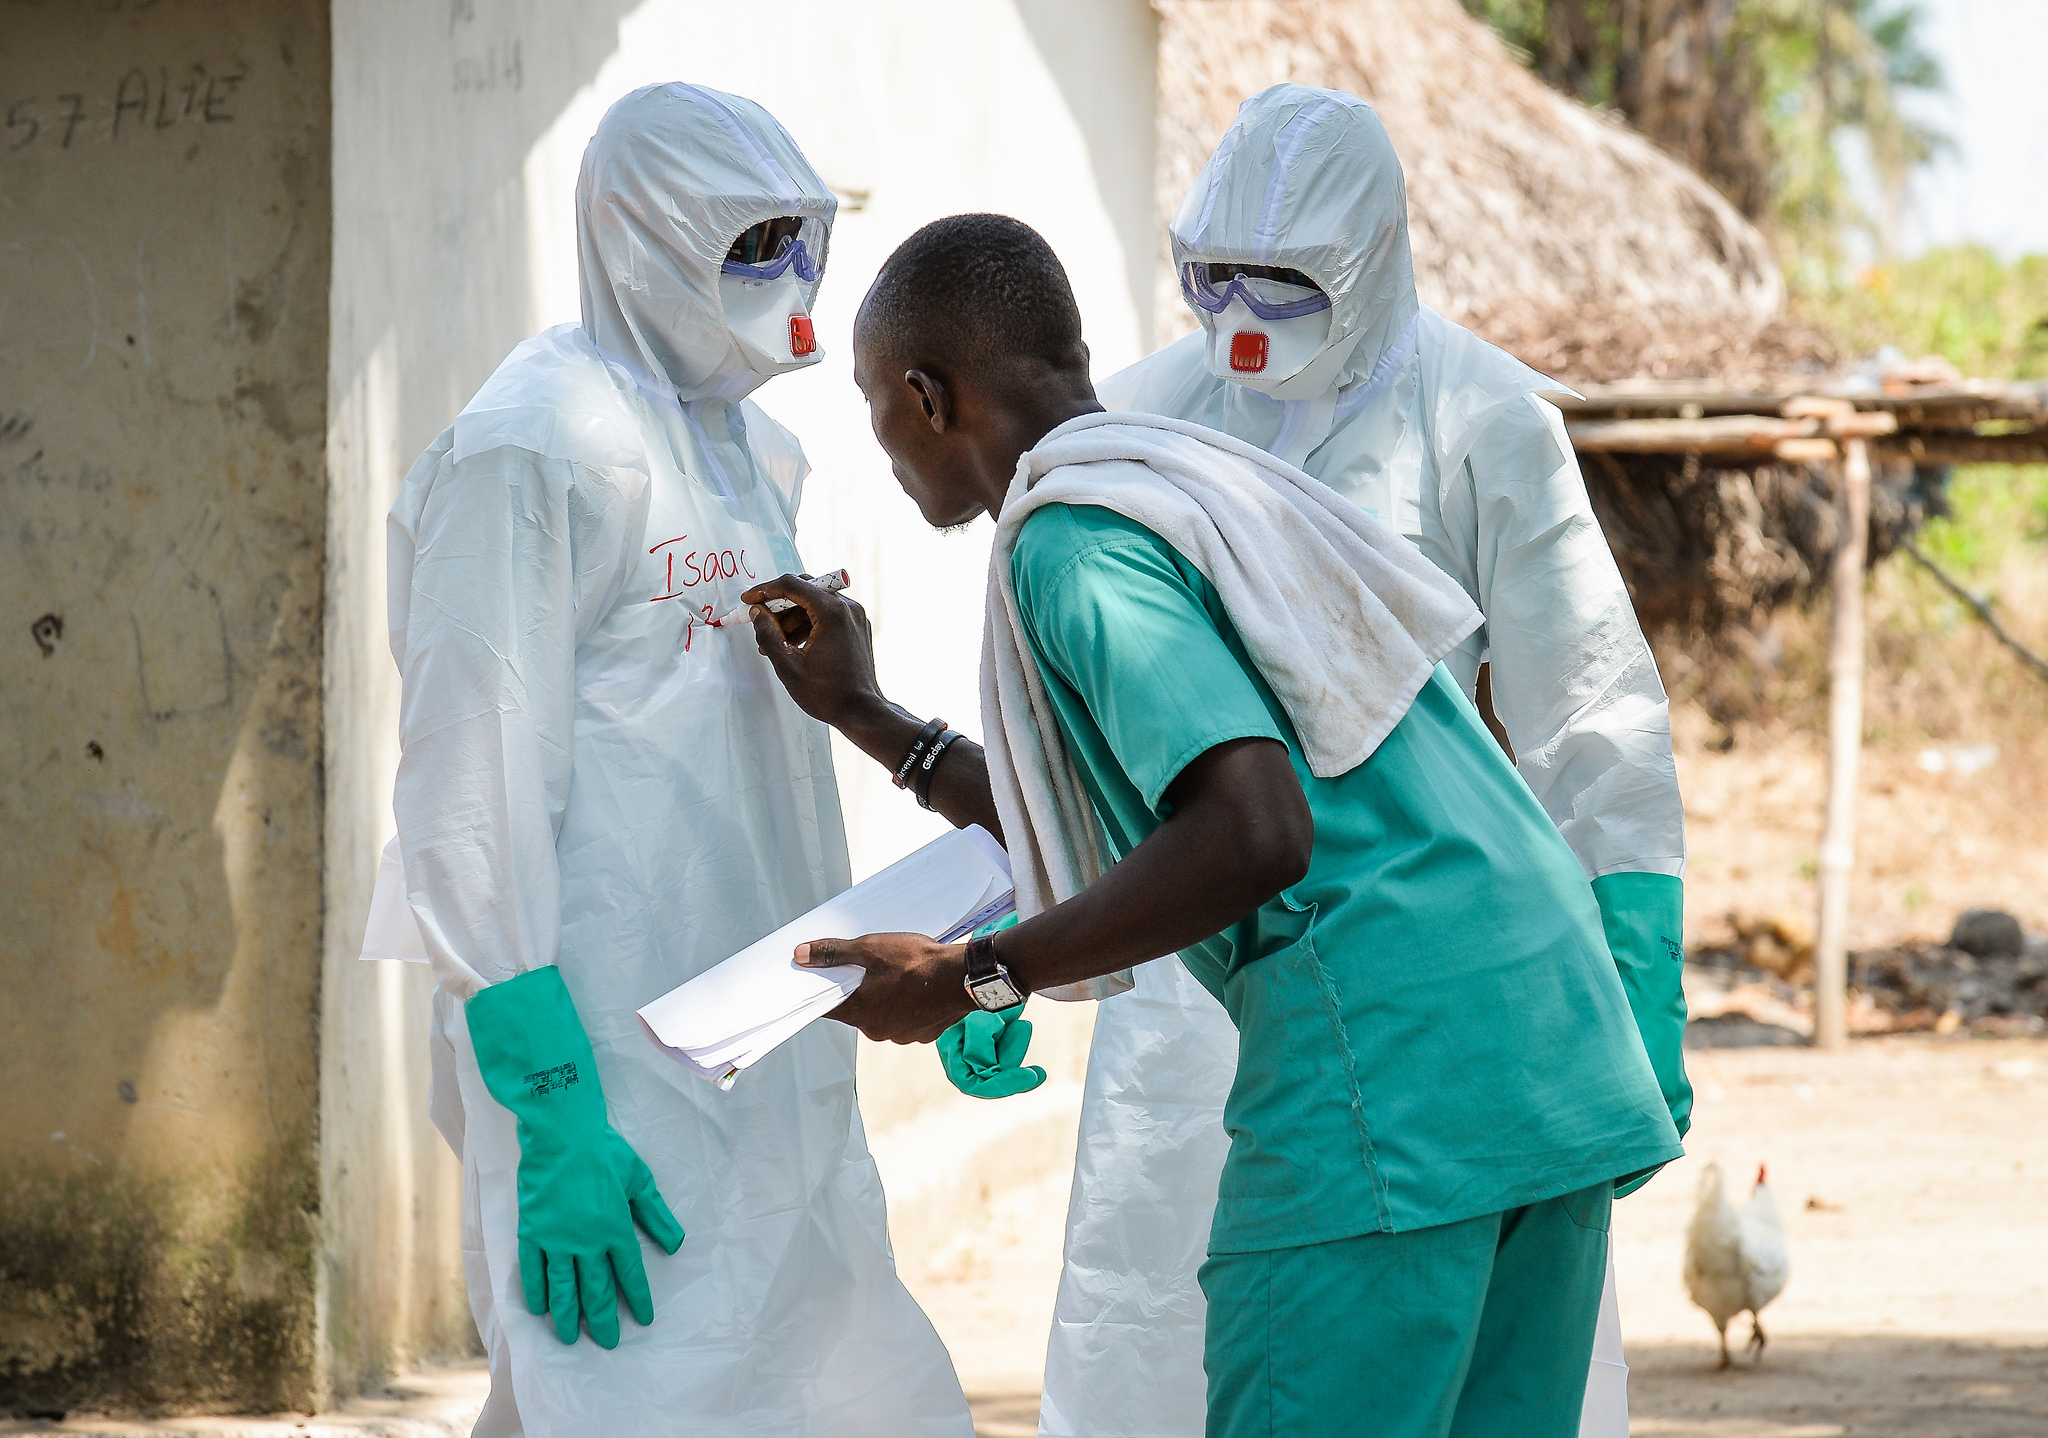 Learning the lessons of Ebola: Why the spread of disease is about more than just health